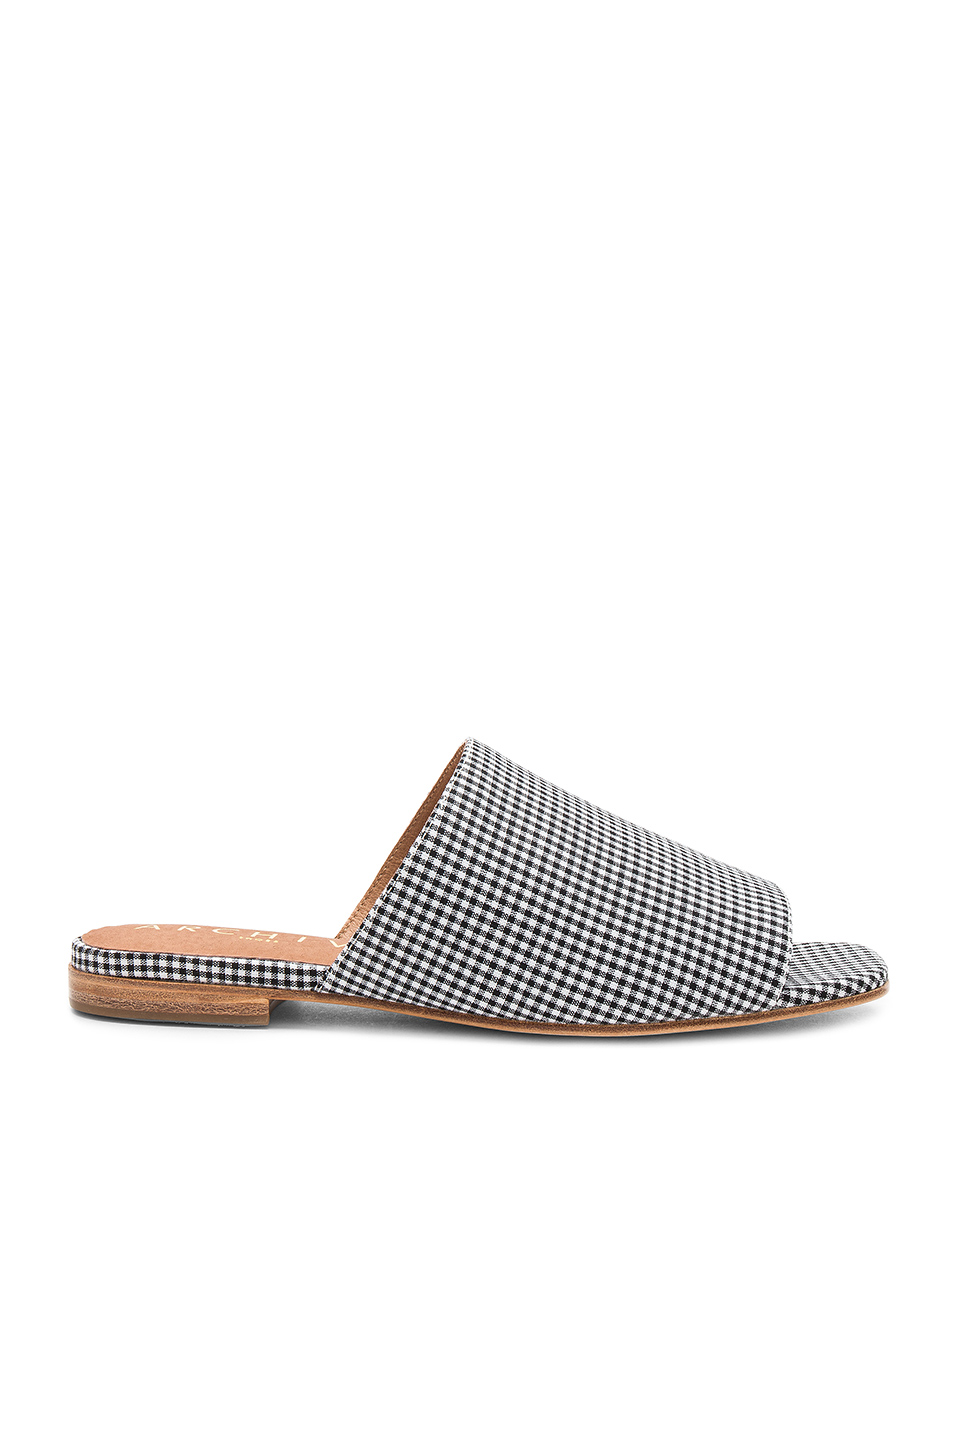 The Archive Beach Slide in Gingham